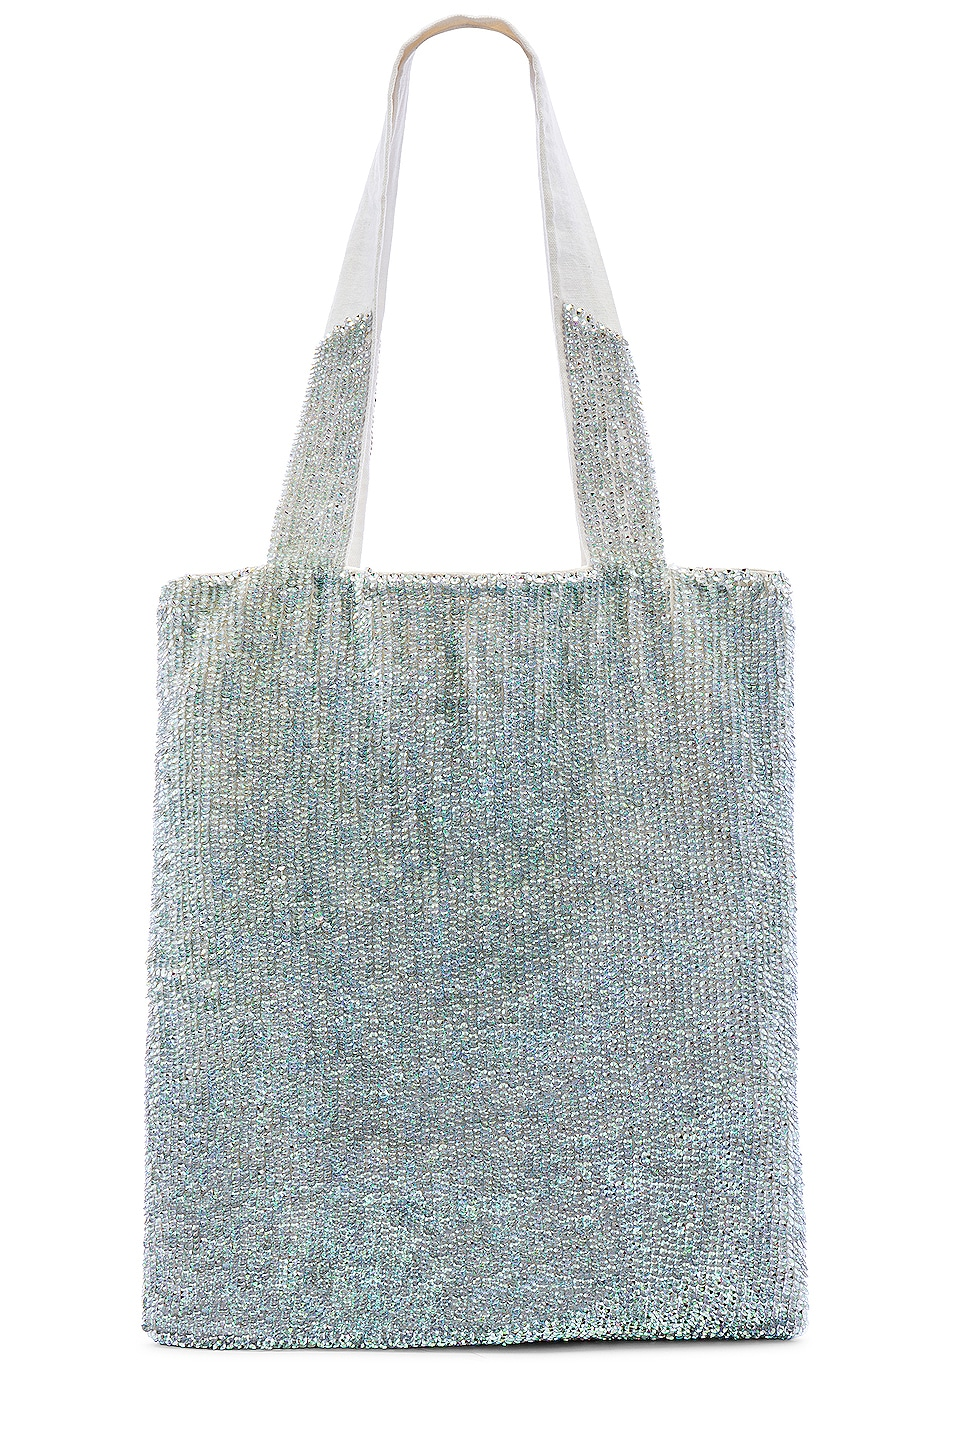 Bag Of Ice Price Retrofete Tote Bag In Ice Silver From Revolve